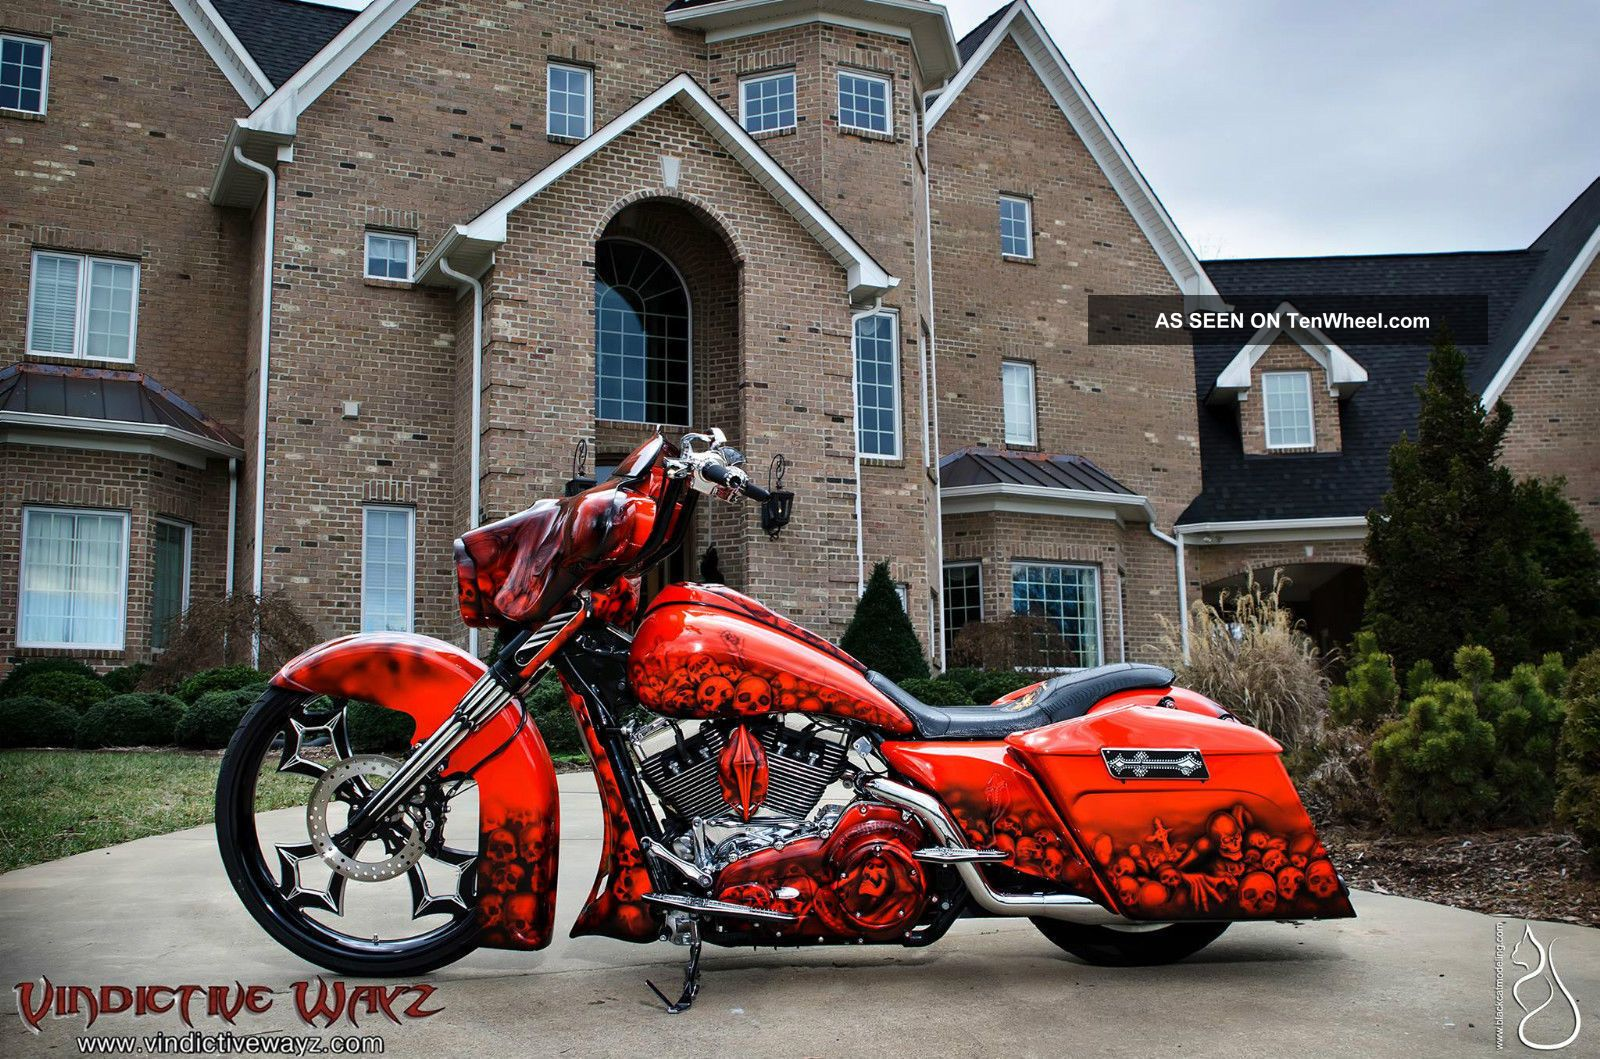 2012 Harley Street Glide Custom Built By Joey Beam ' S Vindictive Wayz,  Road King Touring photo